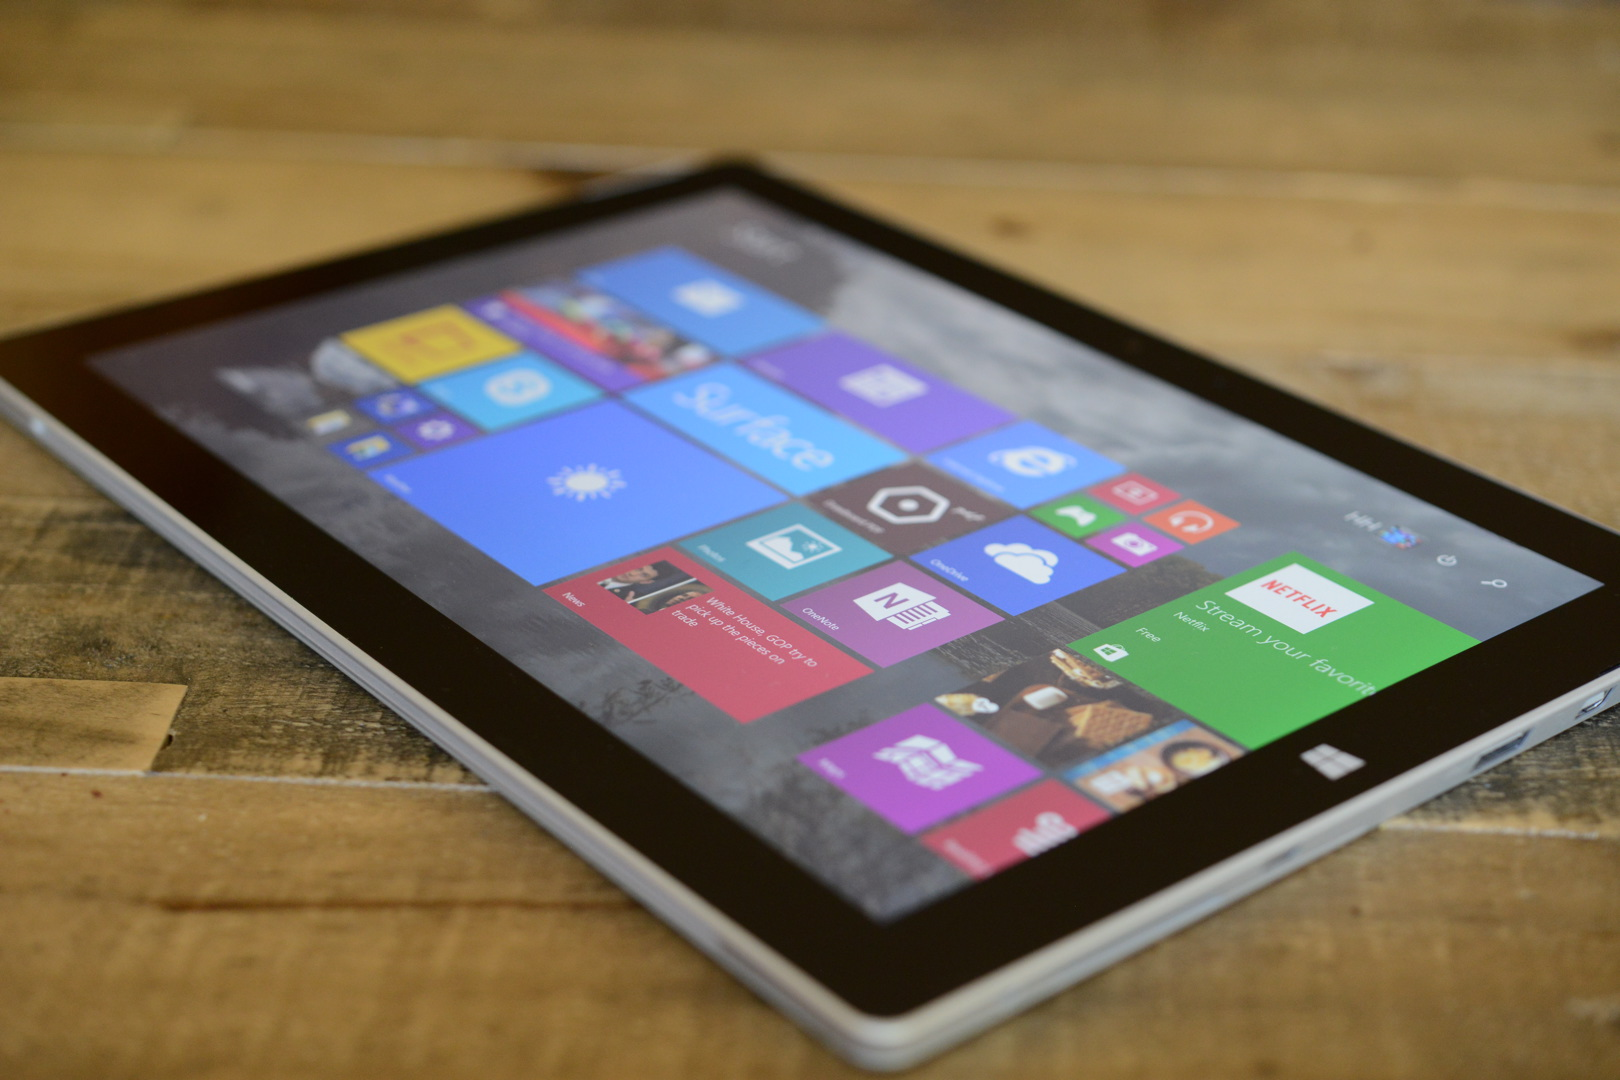 Microsoft Surface 3 Review: Capability And Compromises